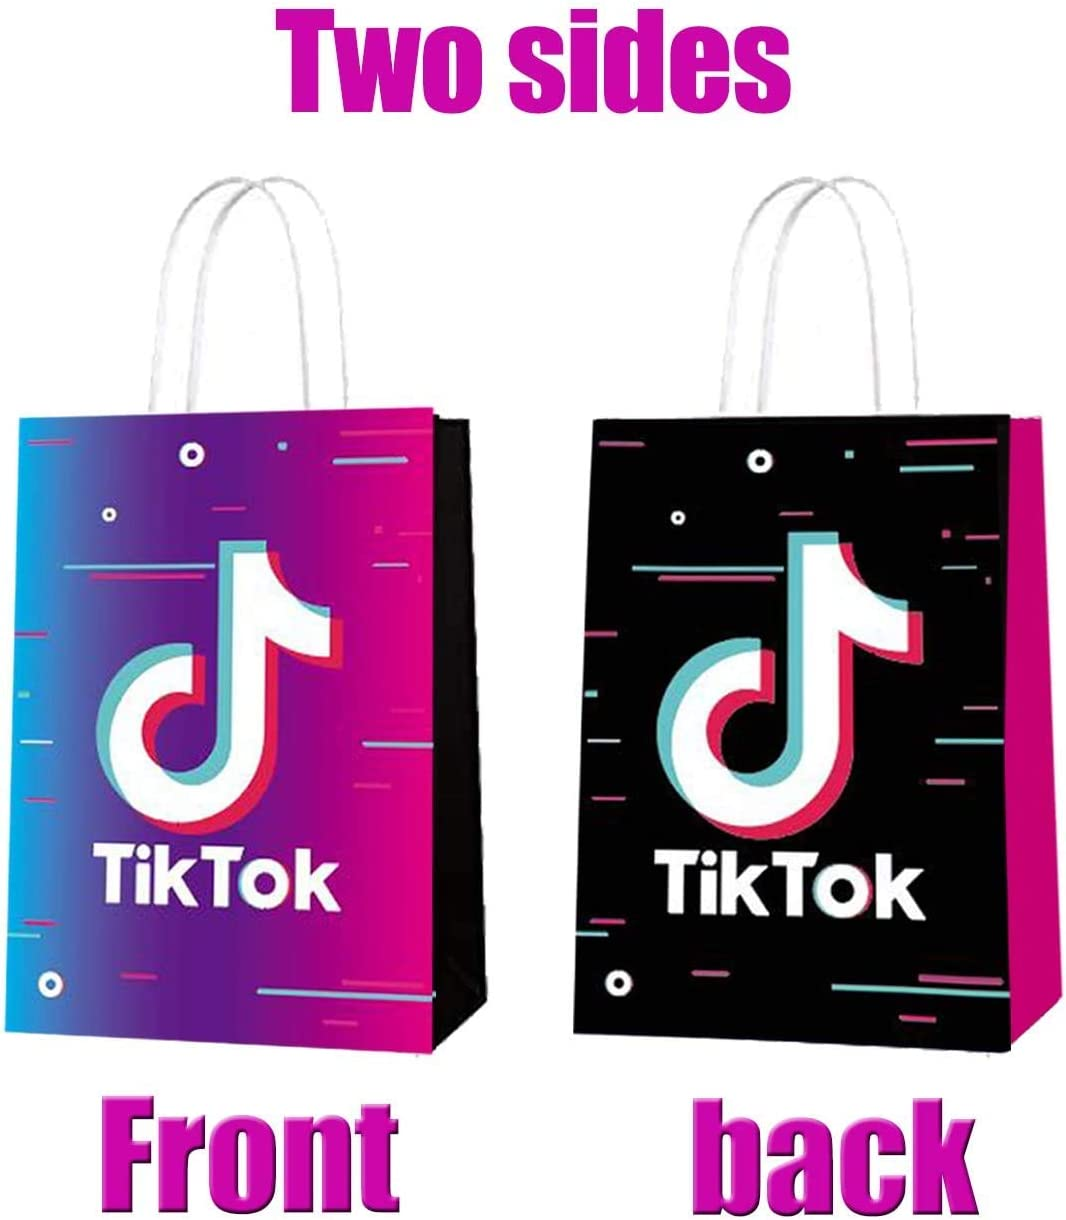 12 PCS Tik Tok Birthday Gift Bags with 50 PCS TikTok Stickers for tk Themed Party Disco Party Favor Goodie Gift Bags Candy Boxes for Kids Tiktok Birthday Party Decorations